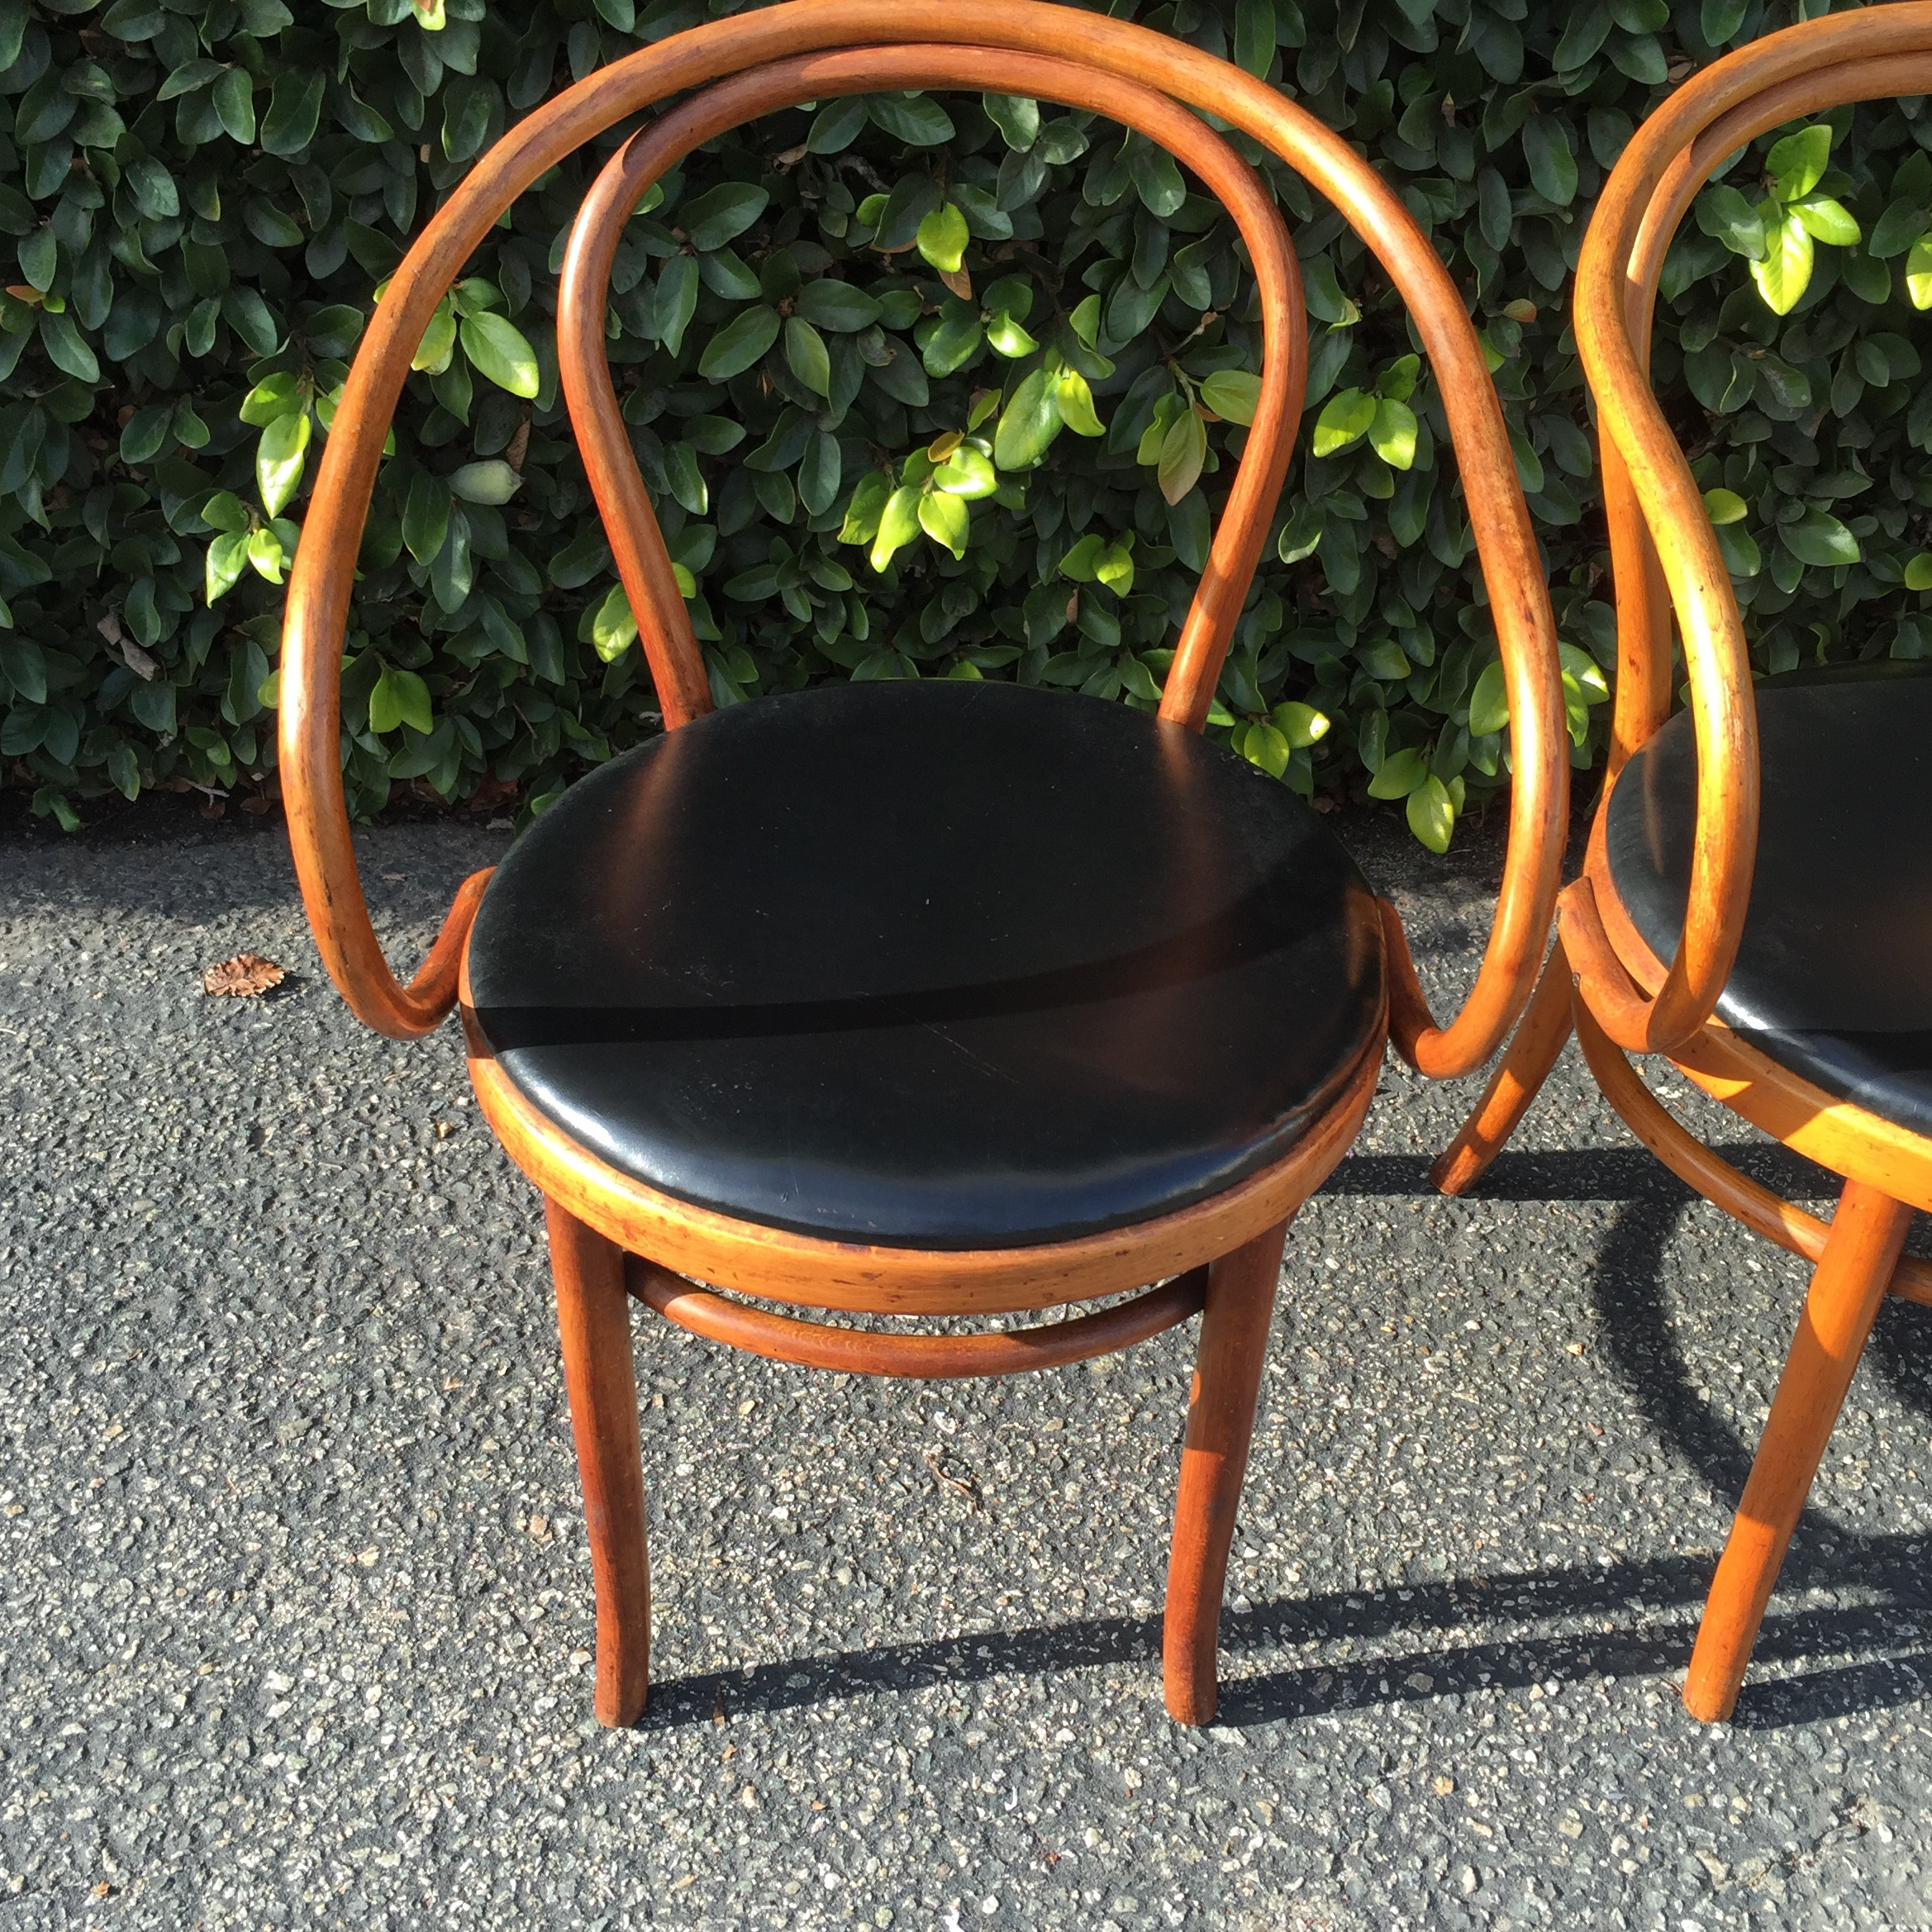 Vintage Thonet B9 Bentwood Chairs   Set Of 4   Image 5 Of 5